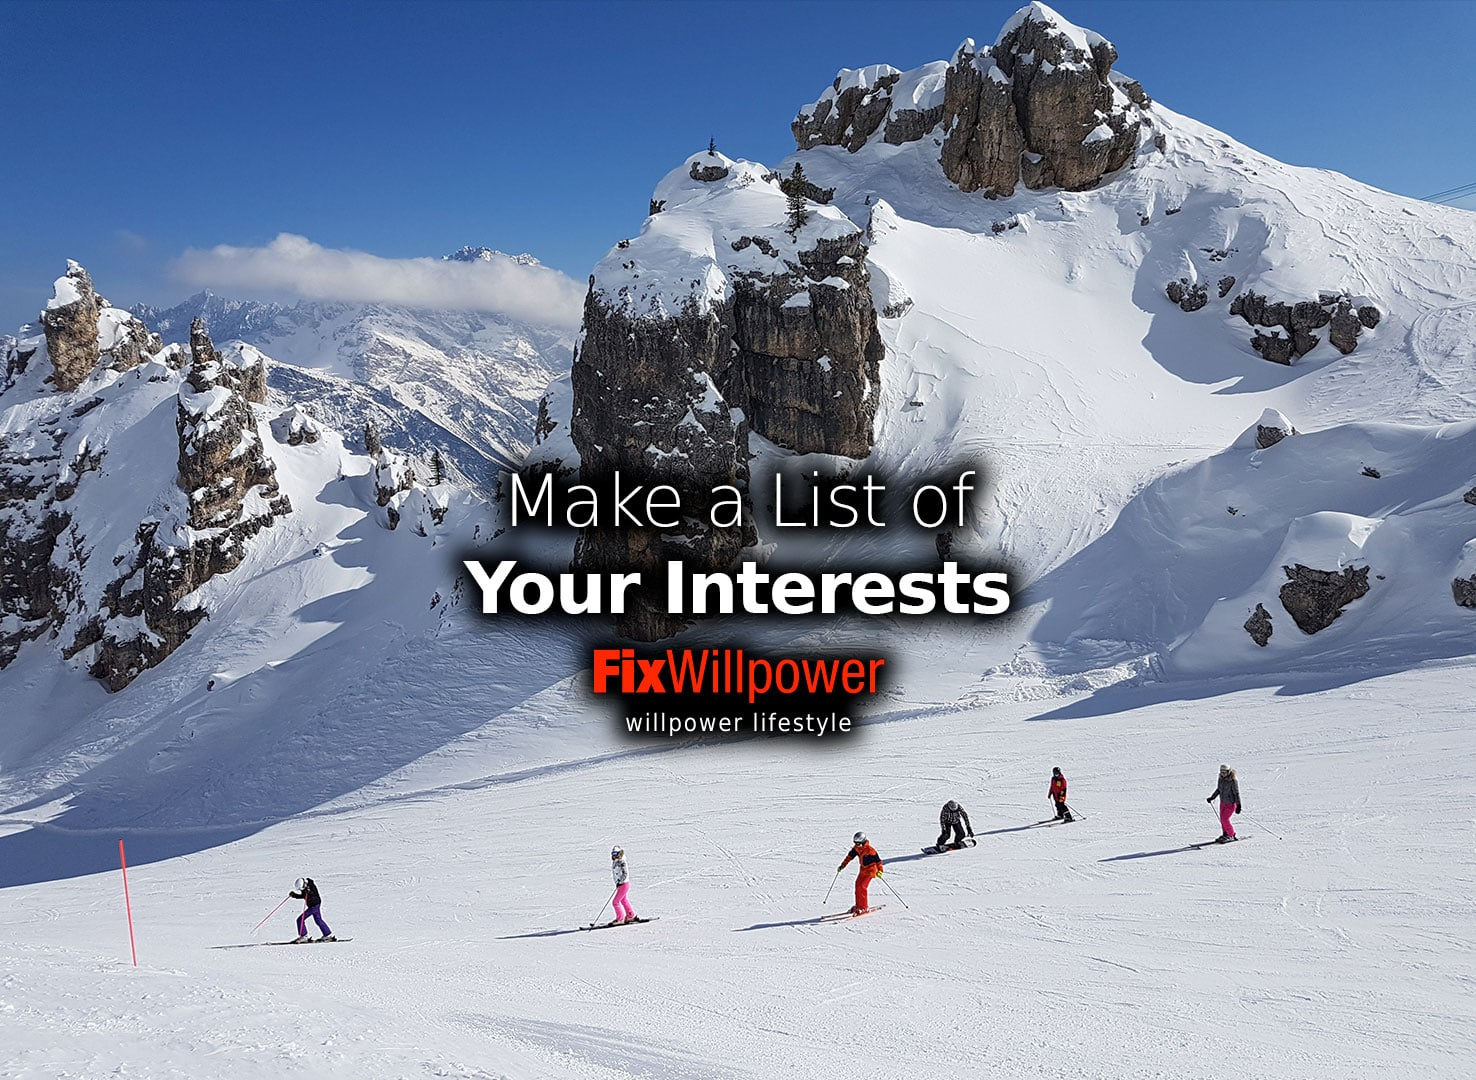 self improvement 26 make a list of interests you have fixwillpower